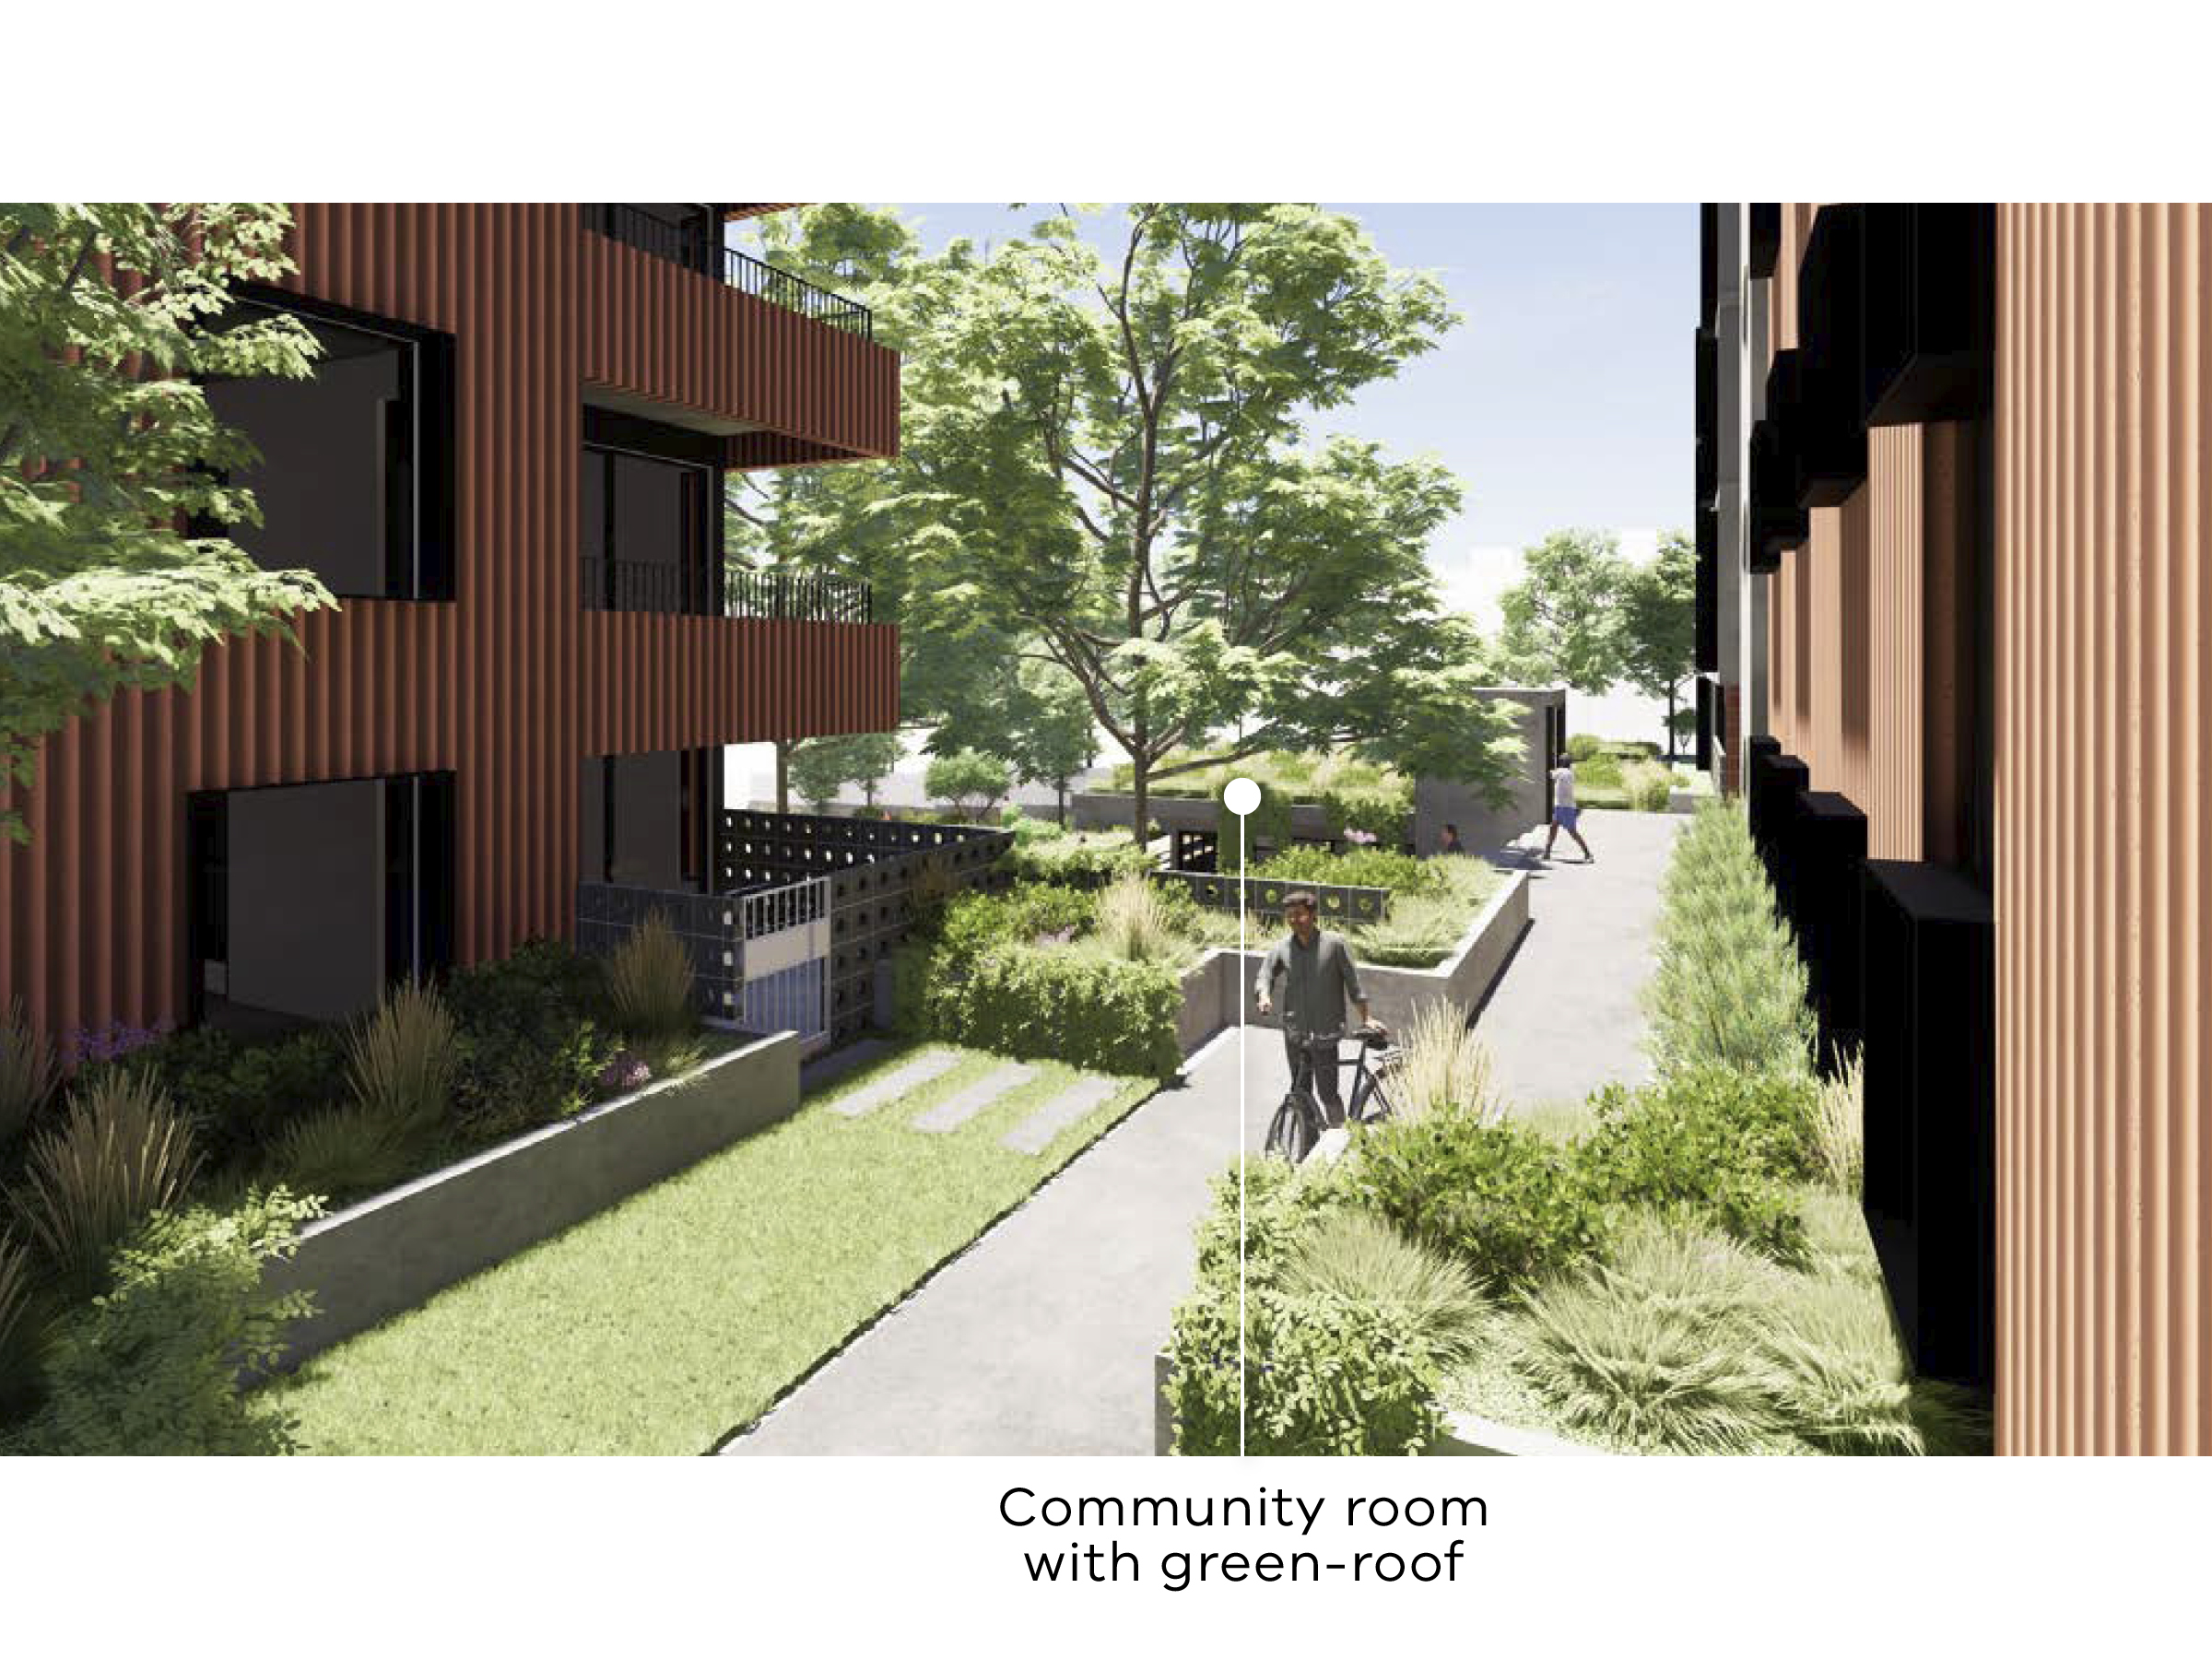 Artist impression of the new development showing the community link looking towards the courtyard. The location of the community room with a green roof is visible.